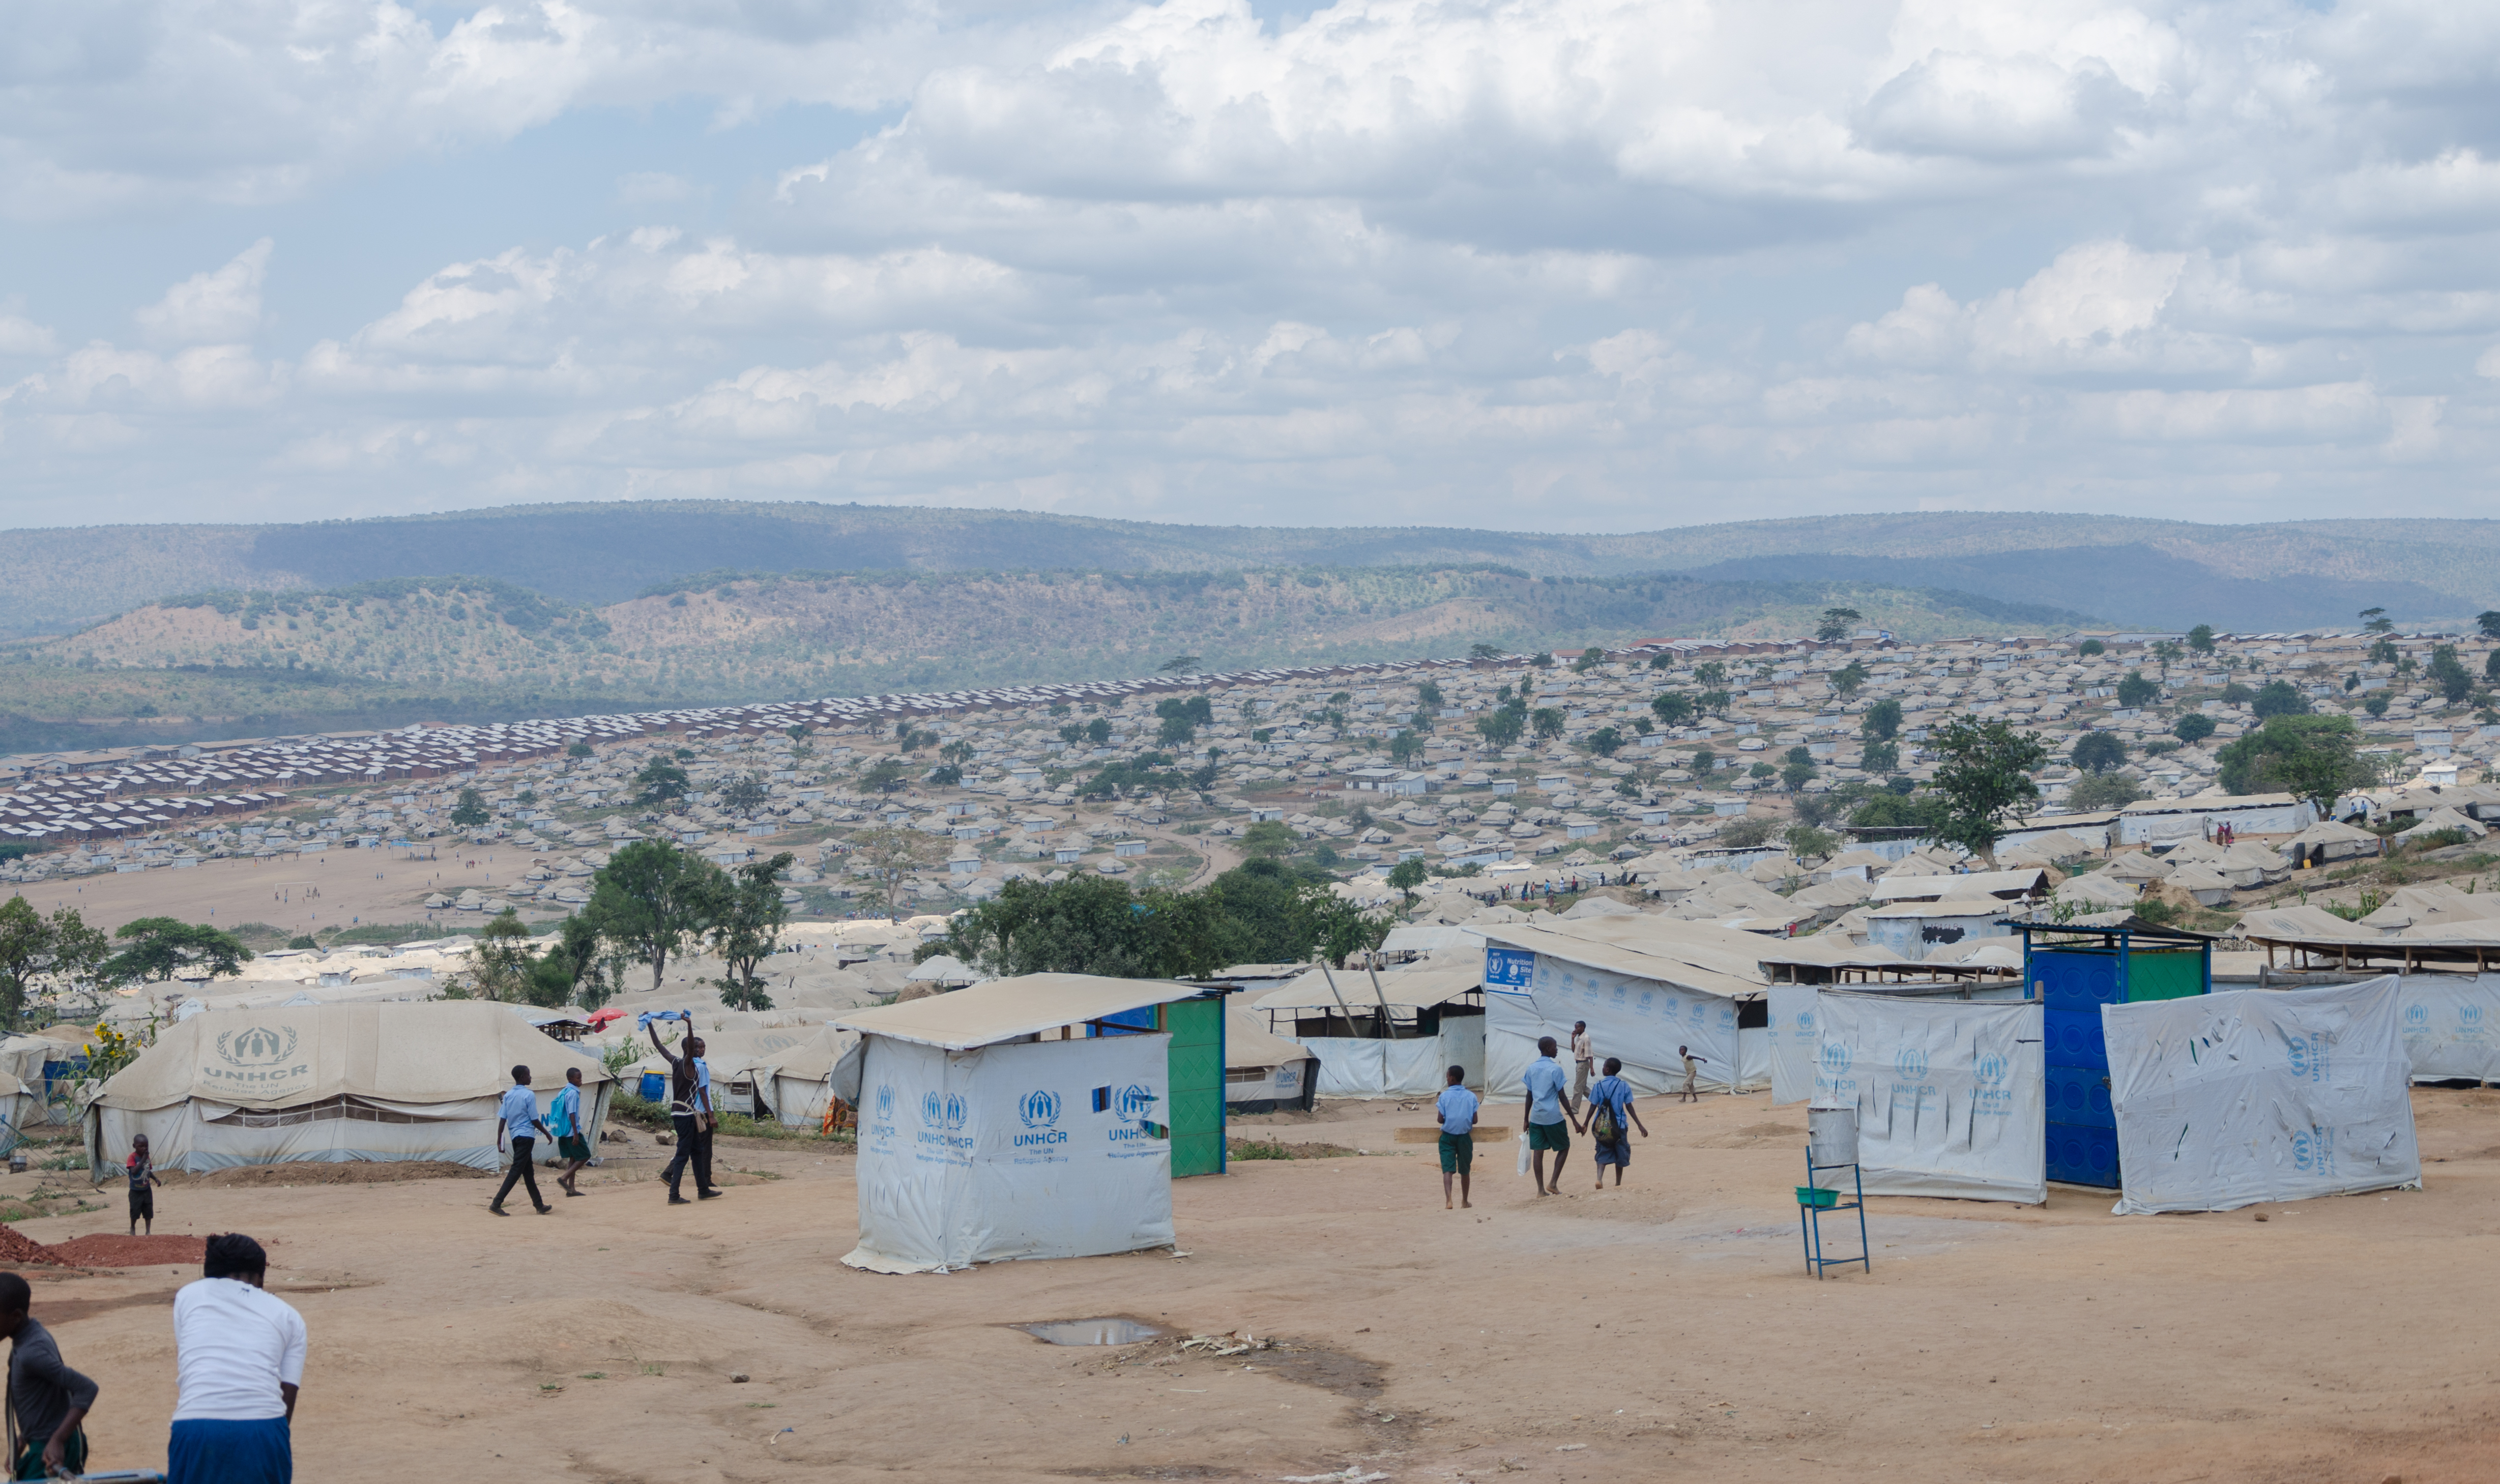 Mahama: Now a Safe Haven for over 50,000 Burundian refugees